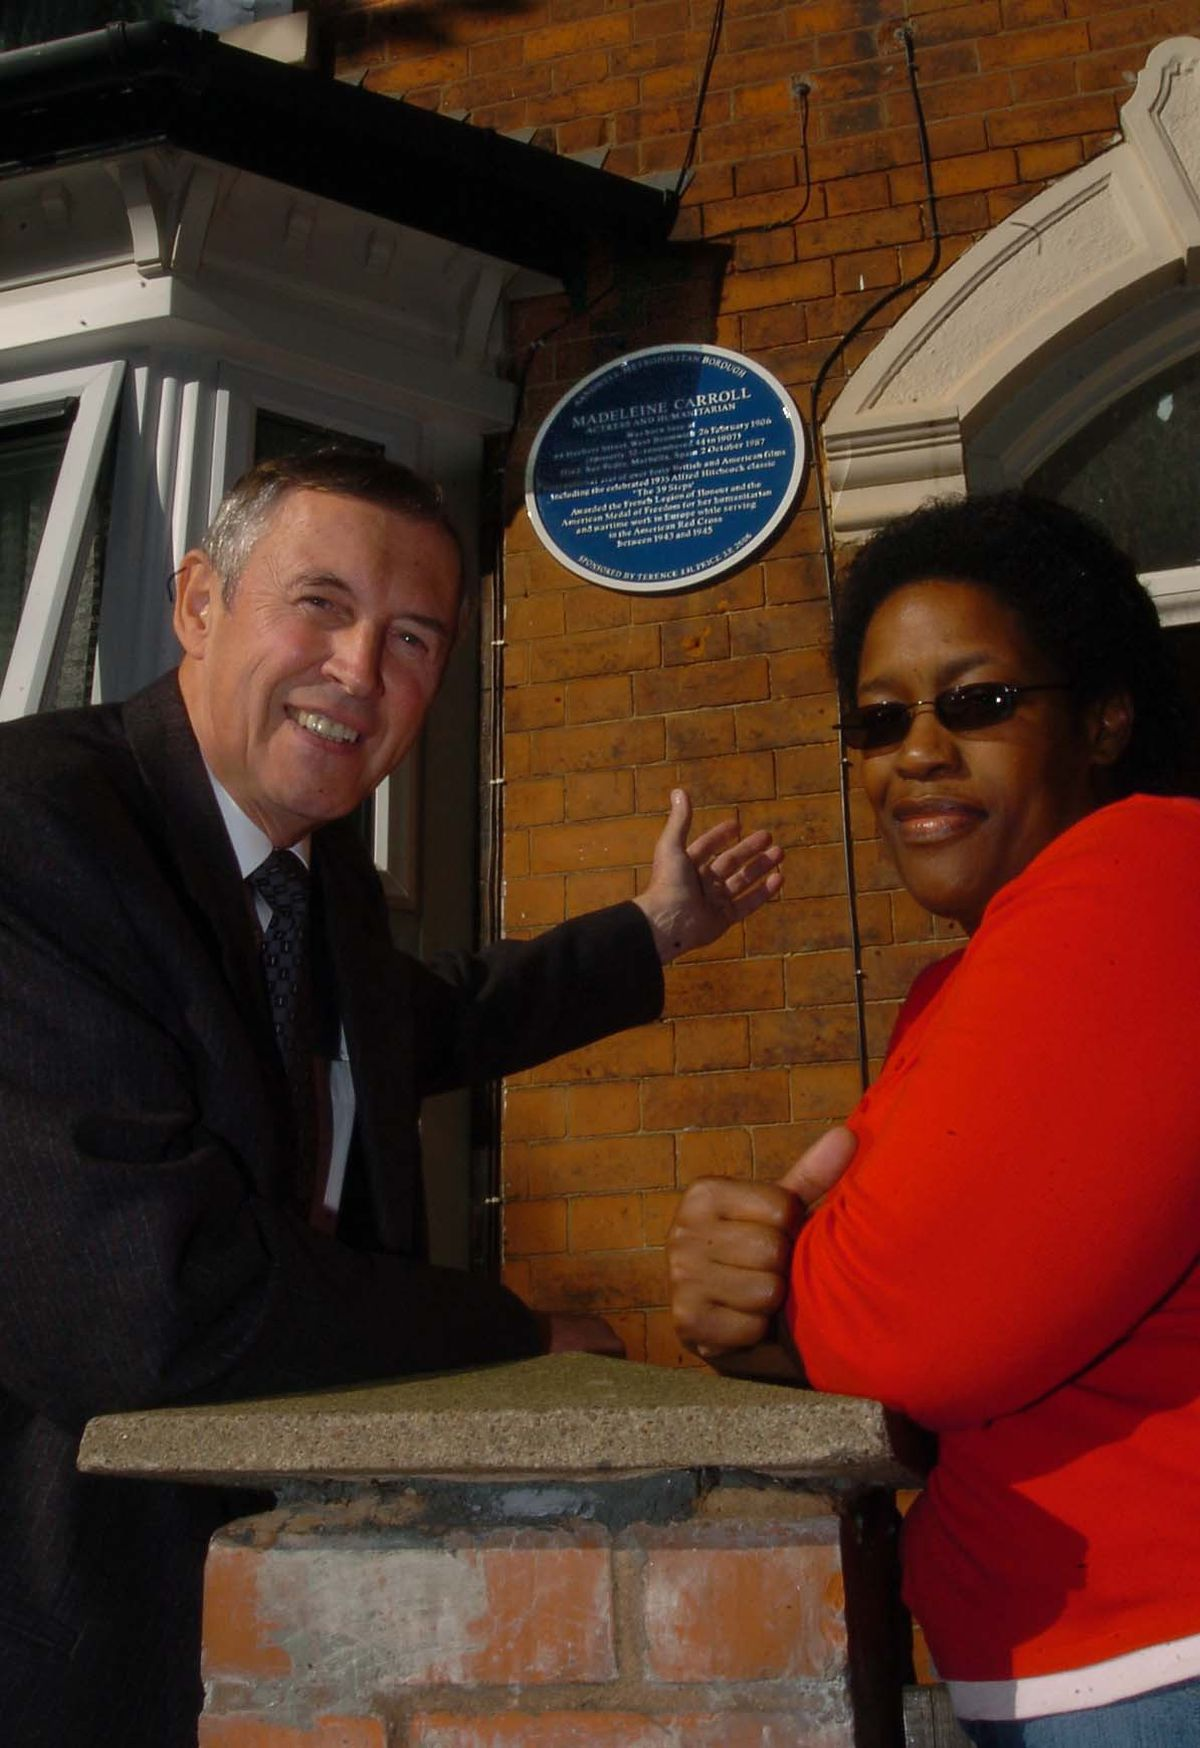 Historian Terry Price arranged for a blue plaque to be installed at Madeleine's birthplace in Herbert Street, West Bromwich in 2006. He was pictured with Mary McGlashen who was living at the house in the time.